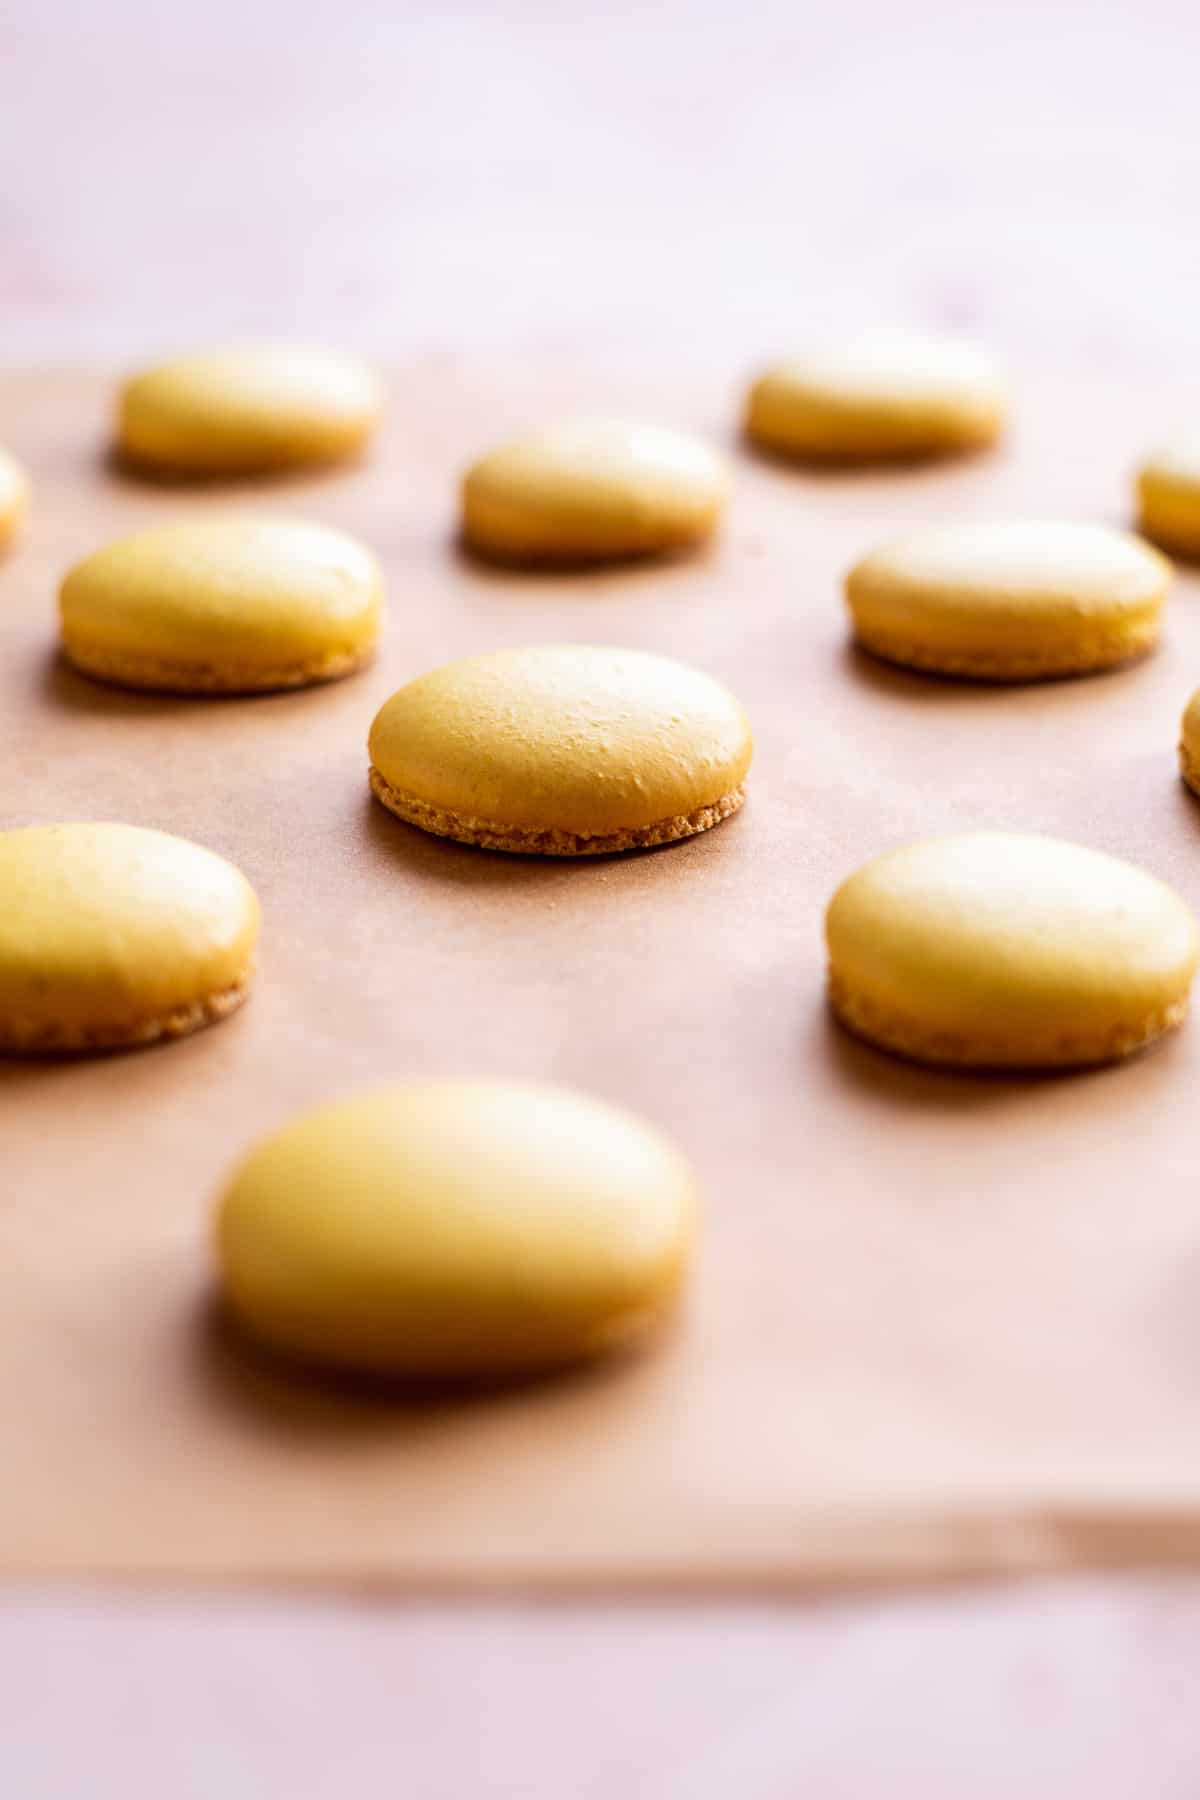 Image of macaron shells baked on parchment paper.